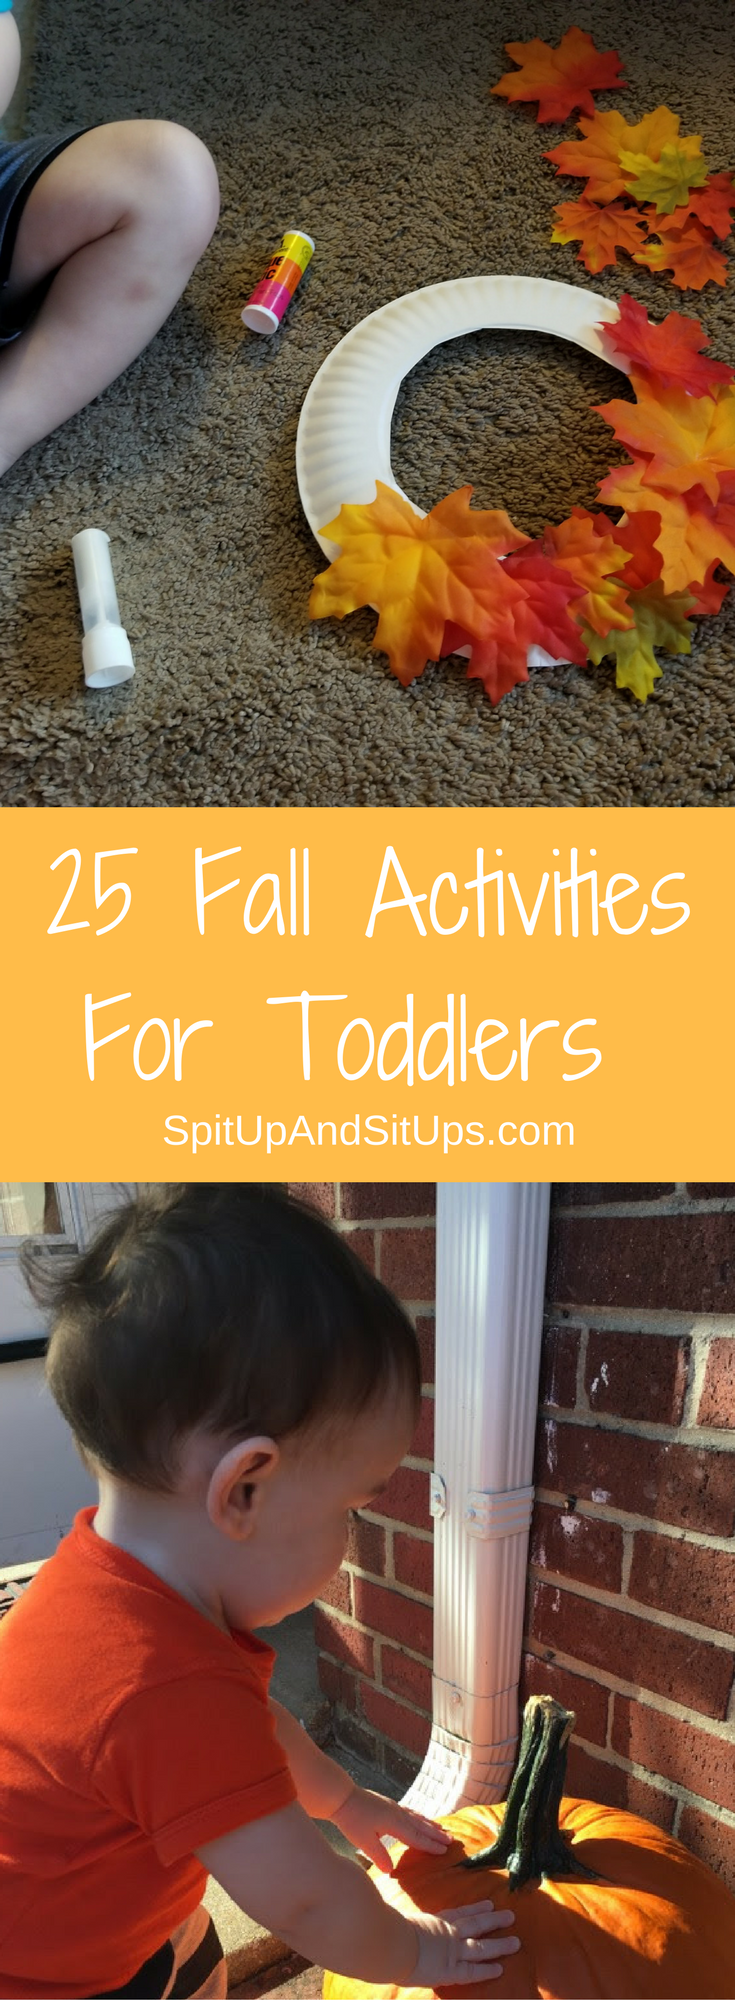 25 Fall Activities For Toddlers #fallactivitiesforkids